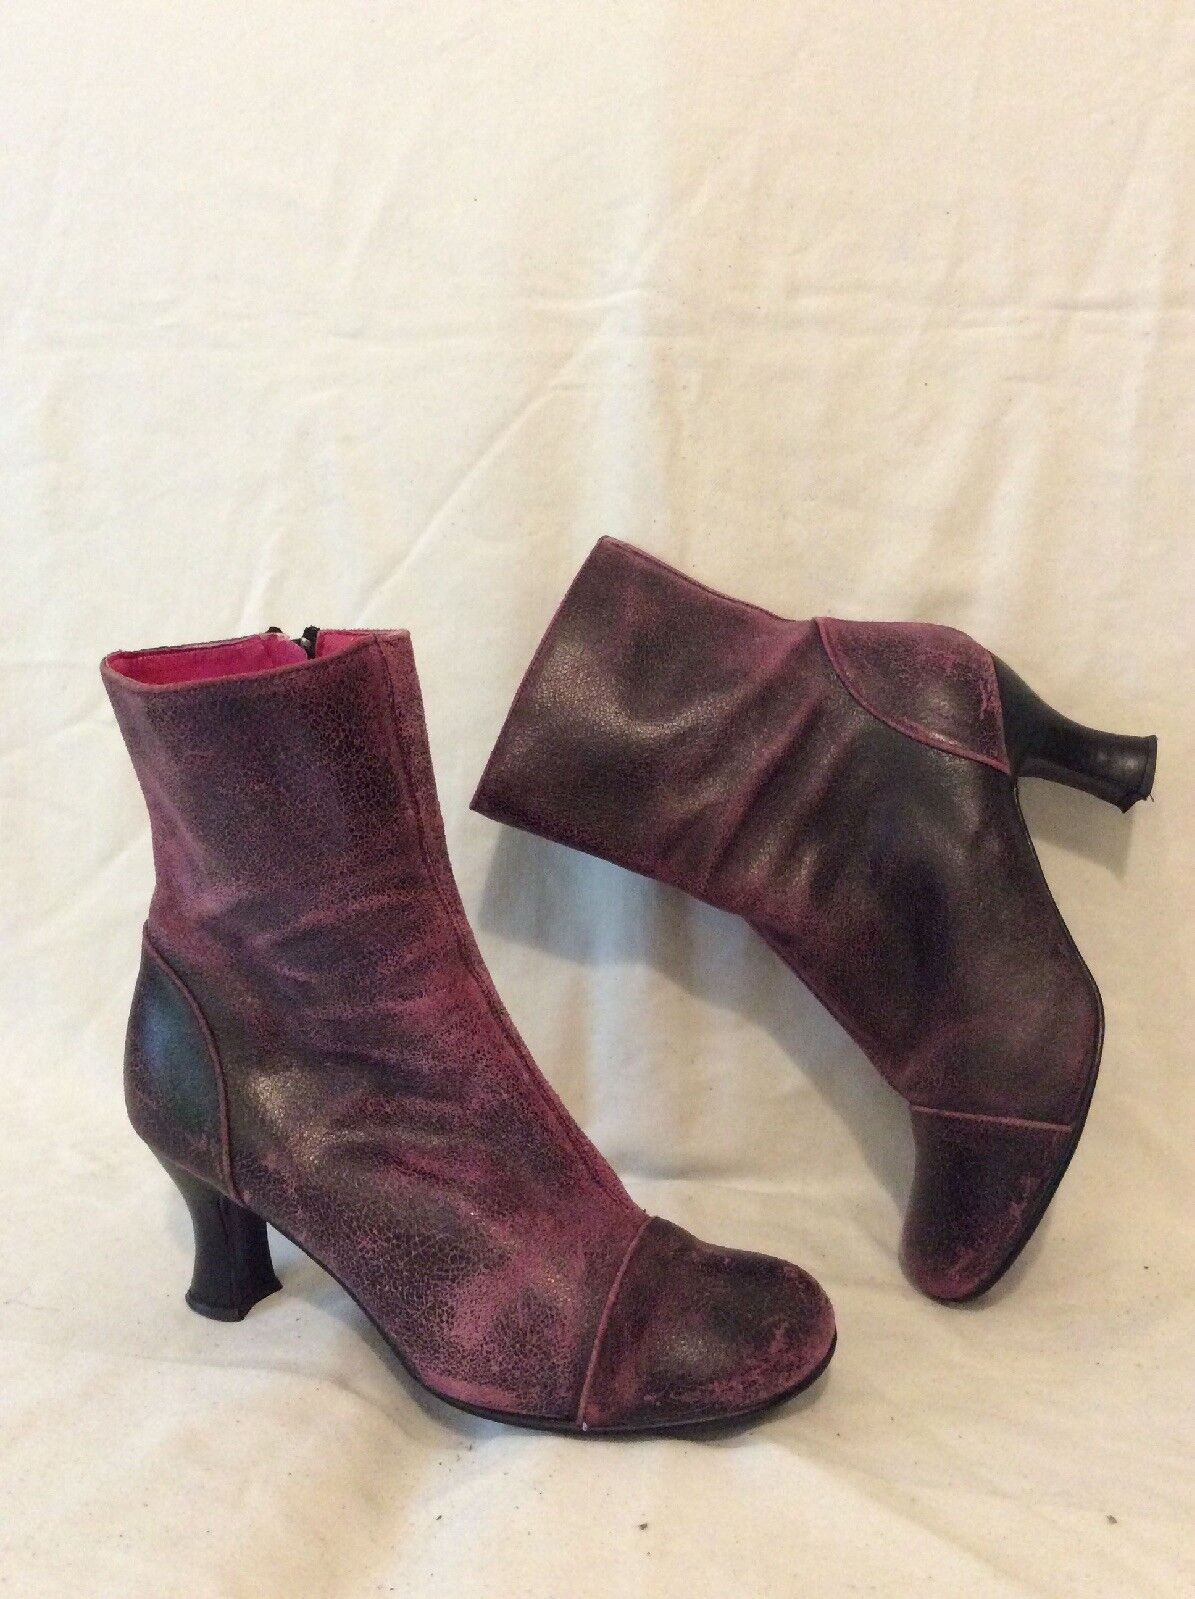 Schuh Burgundy Ankle Leather Boots Size 38